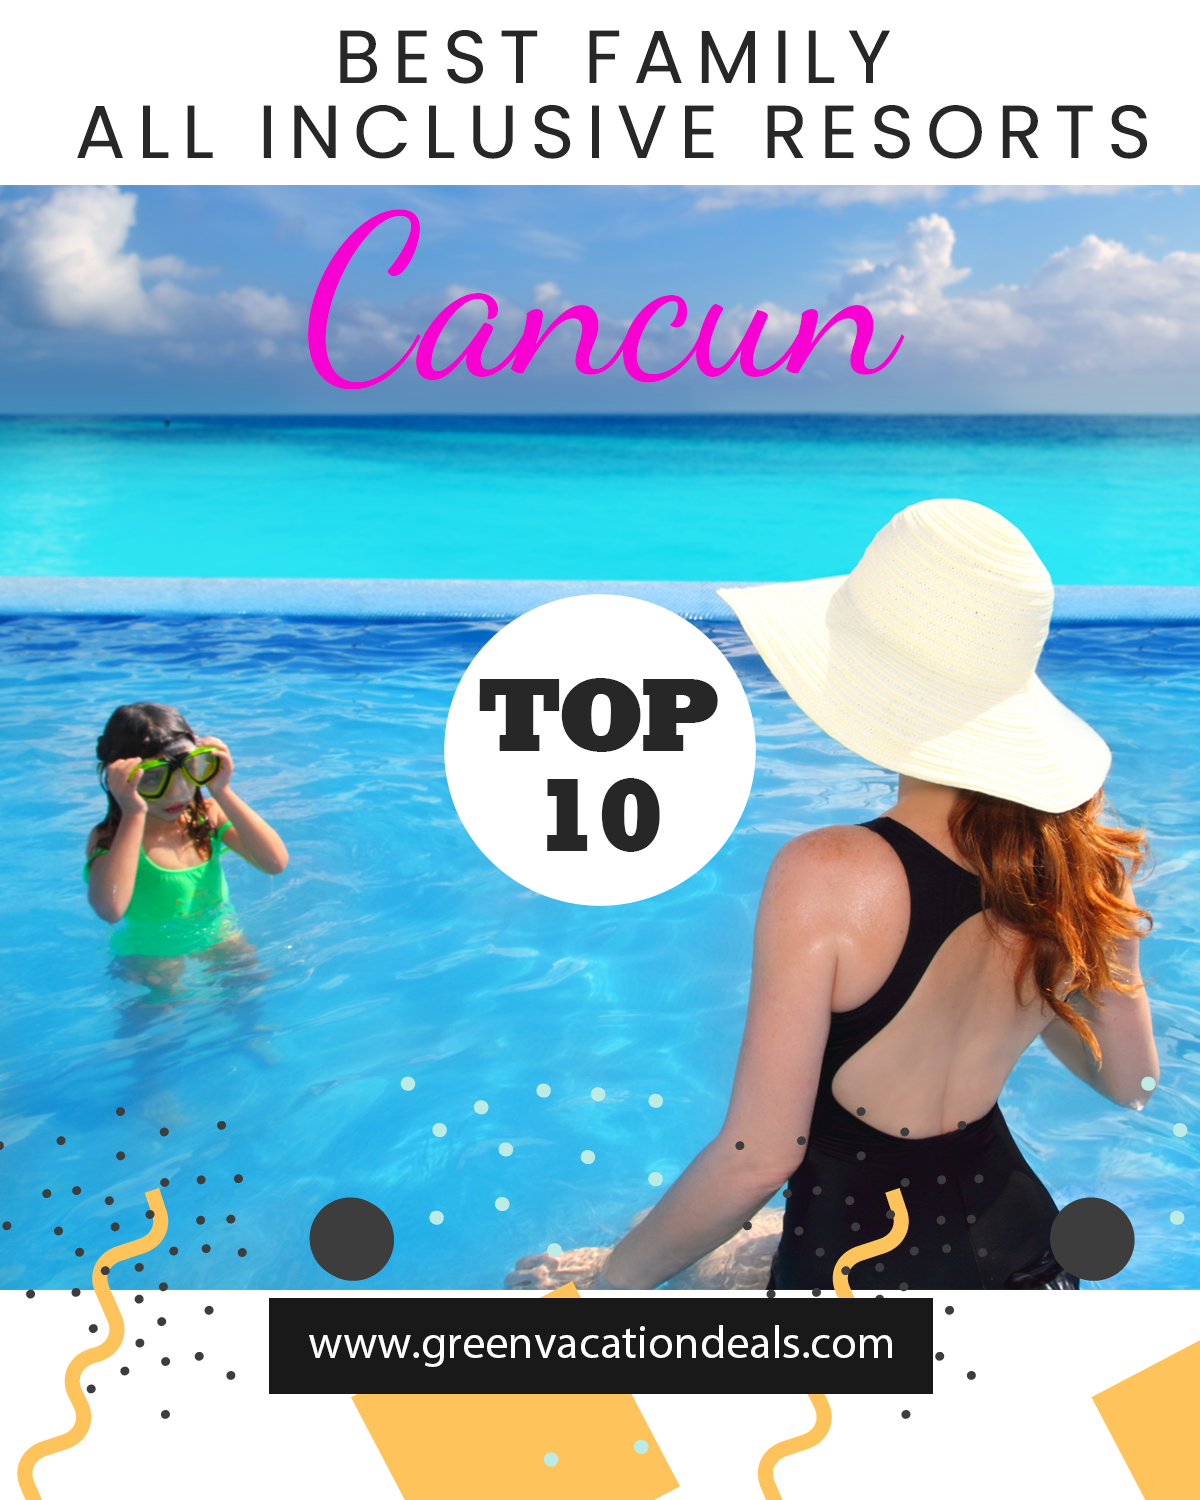 Top 10 Family All Inclusive Resorts In Cancun (With Images